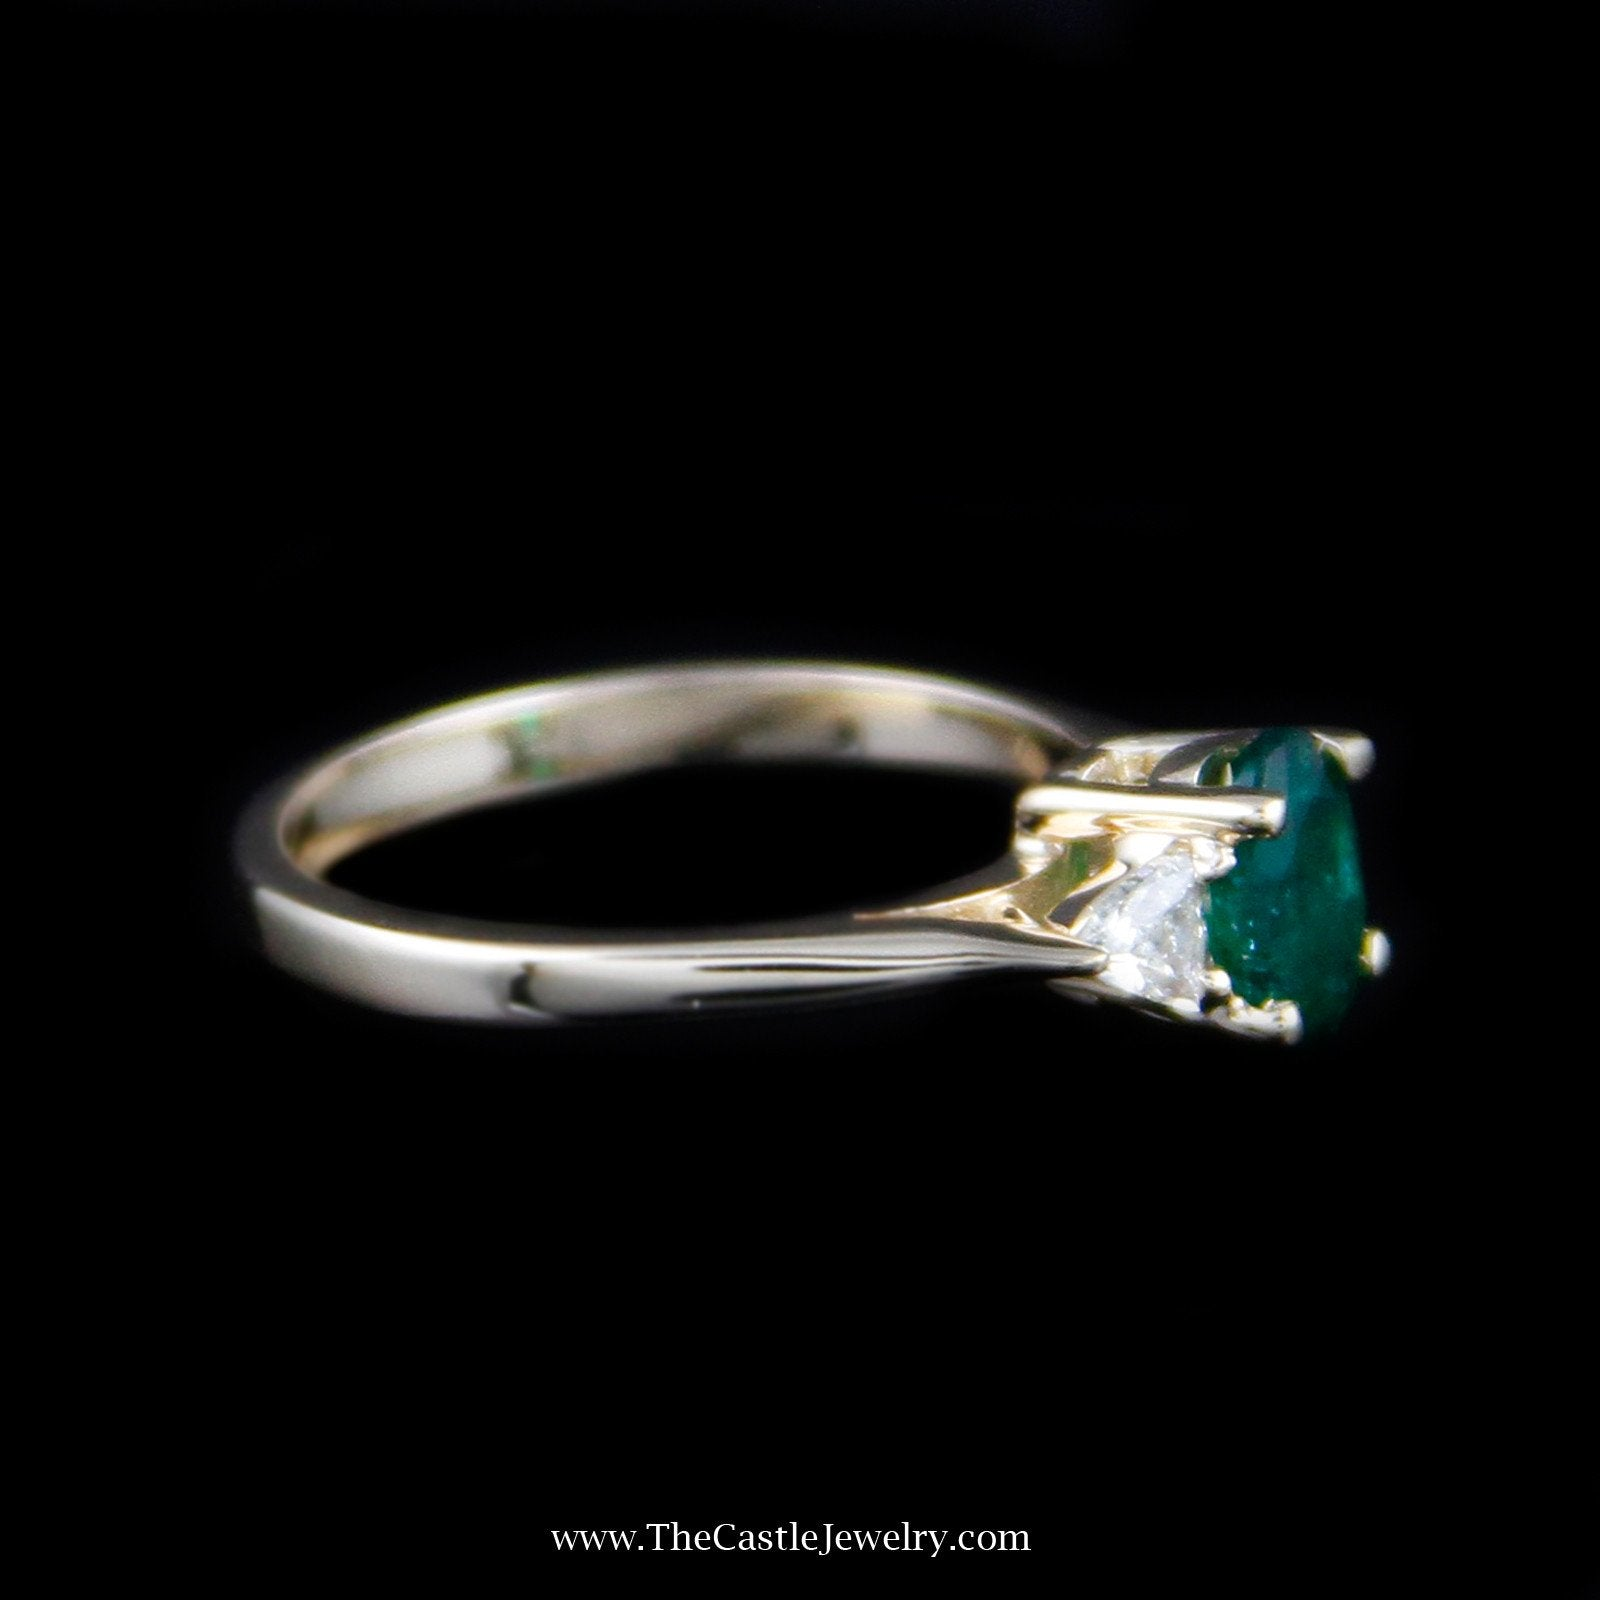 Beautiful Oval Emerald Ring w/ Trillion Cut Diamond Sides in Yellow Gold-2